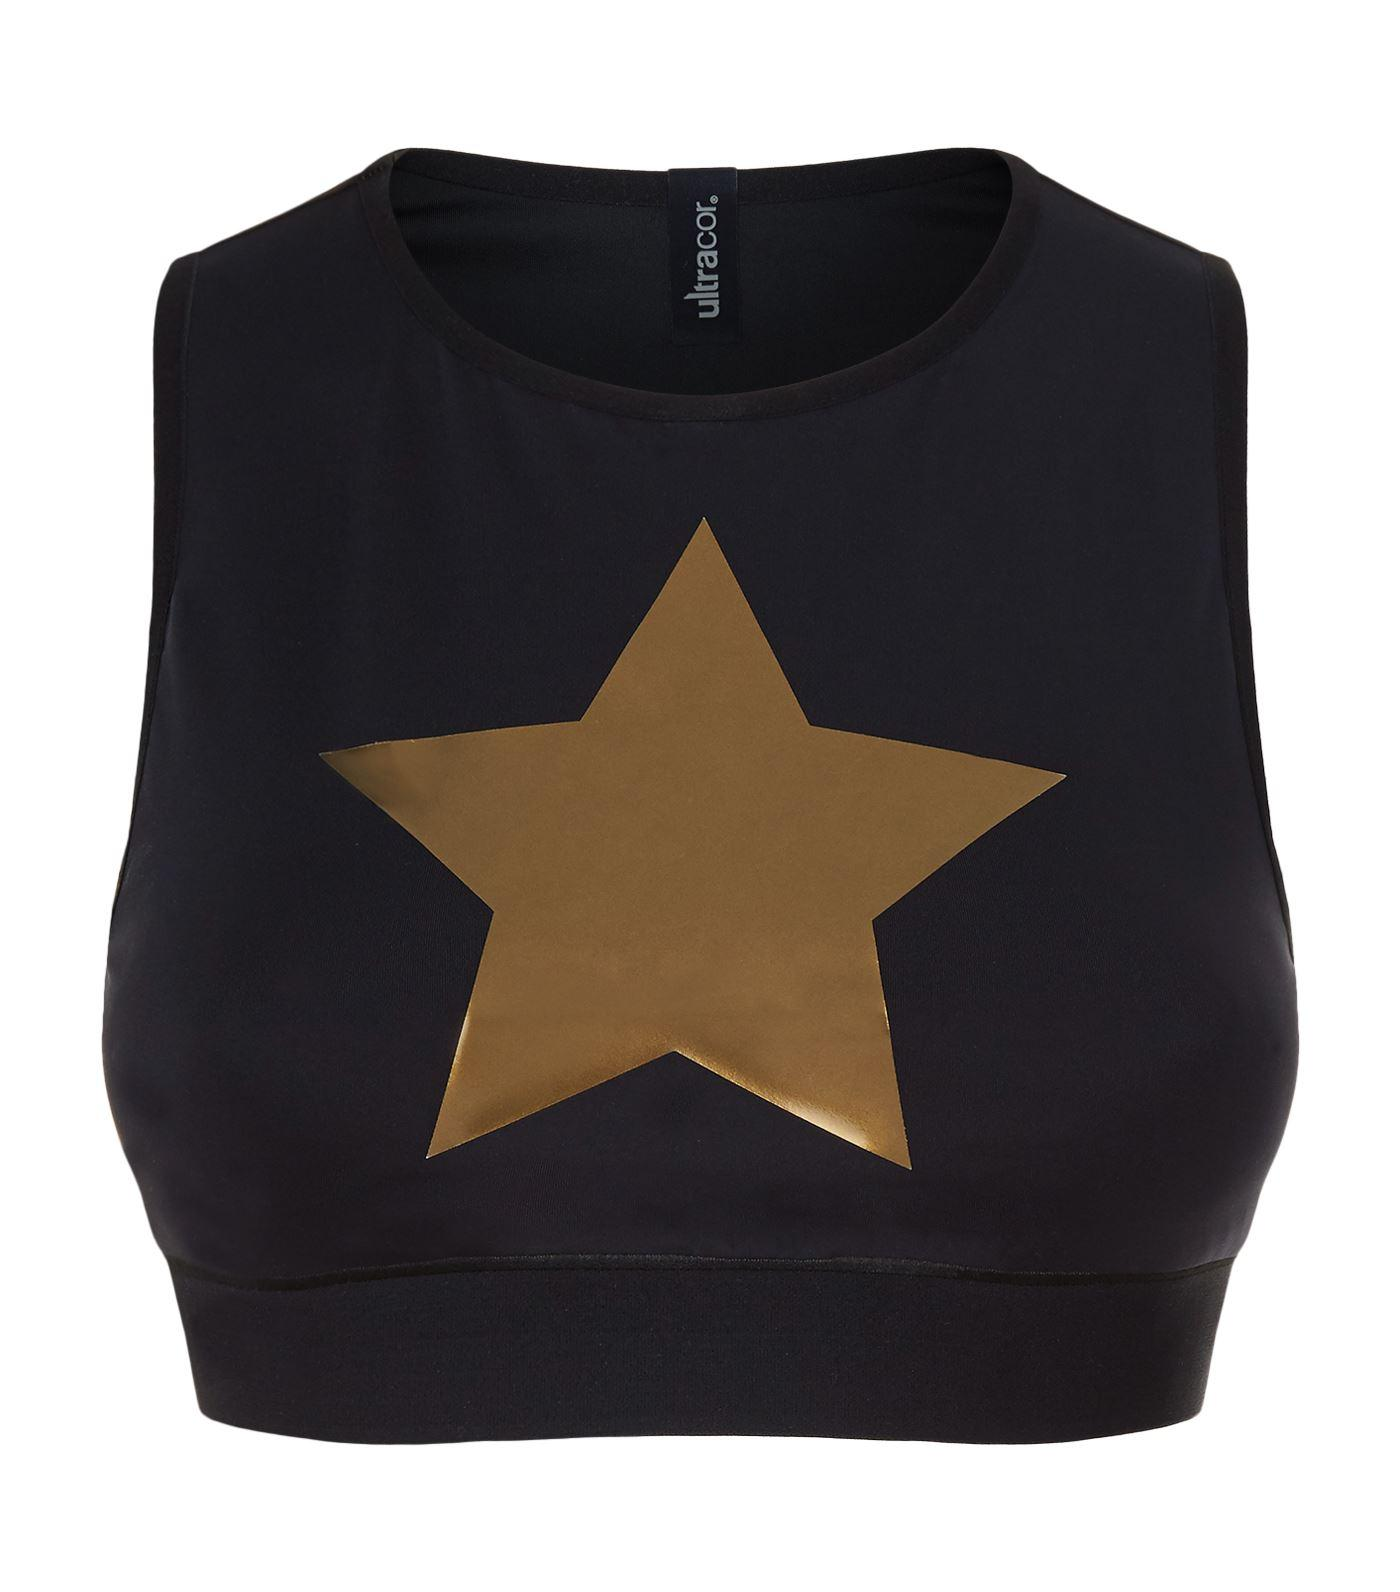 Ultracor Level Knockout Crop Top In Black